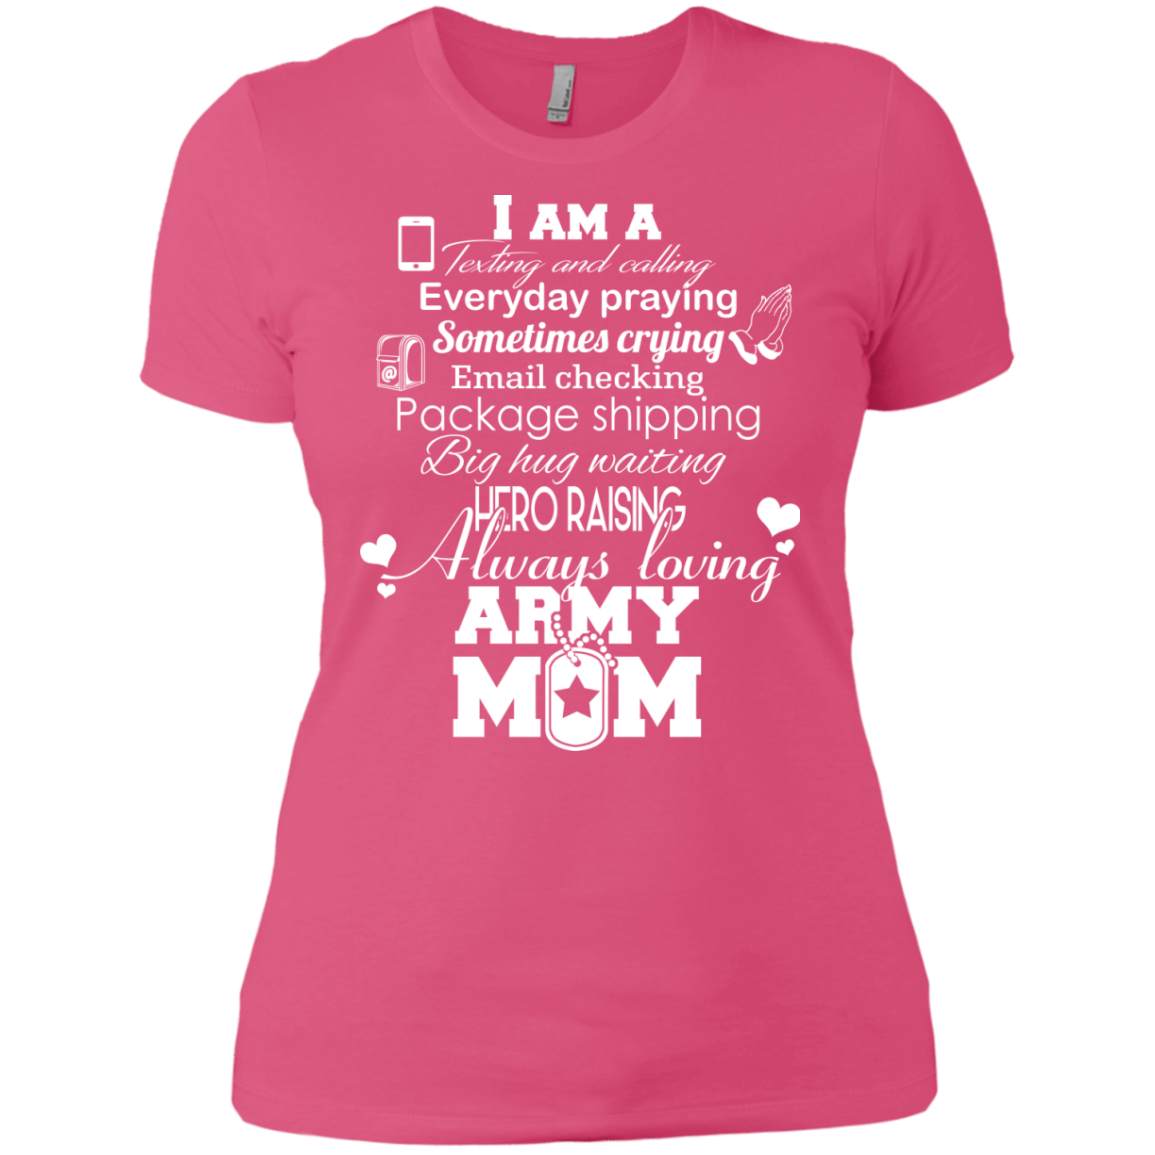 I AM A...ARMY MOM - The Sun Cat